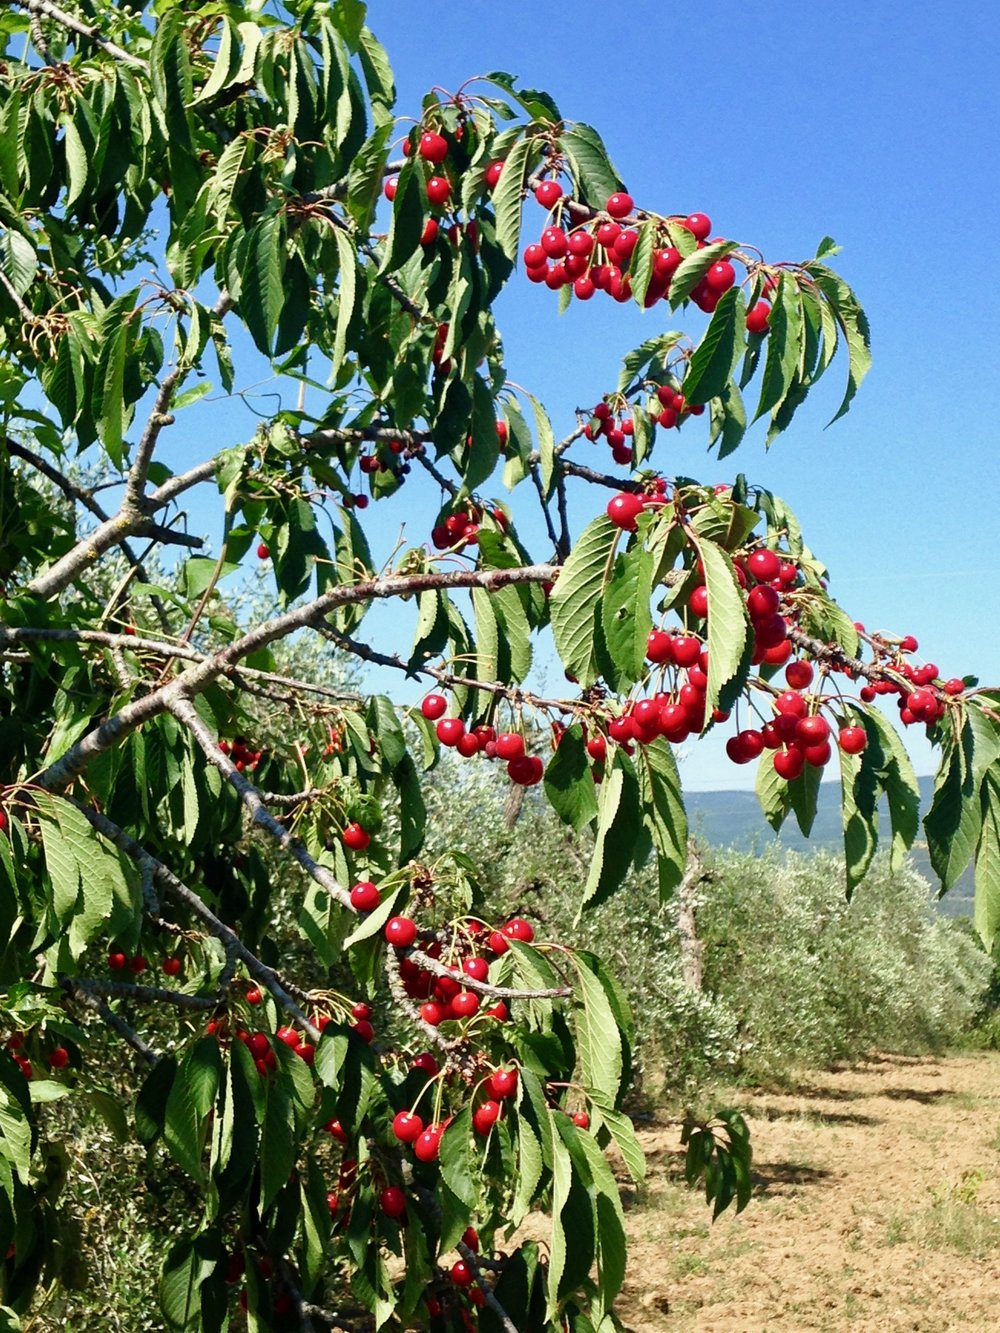 Wild cherries and olive trees